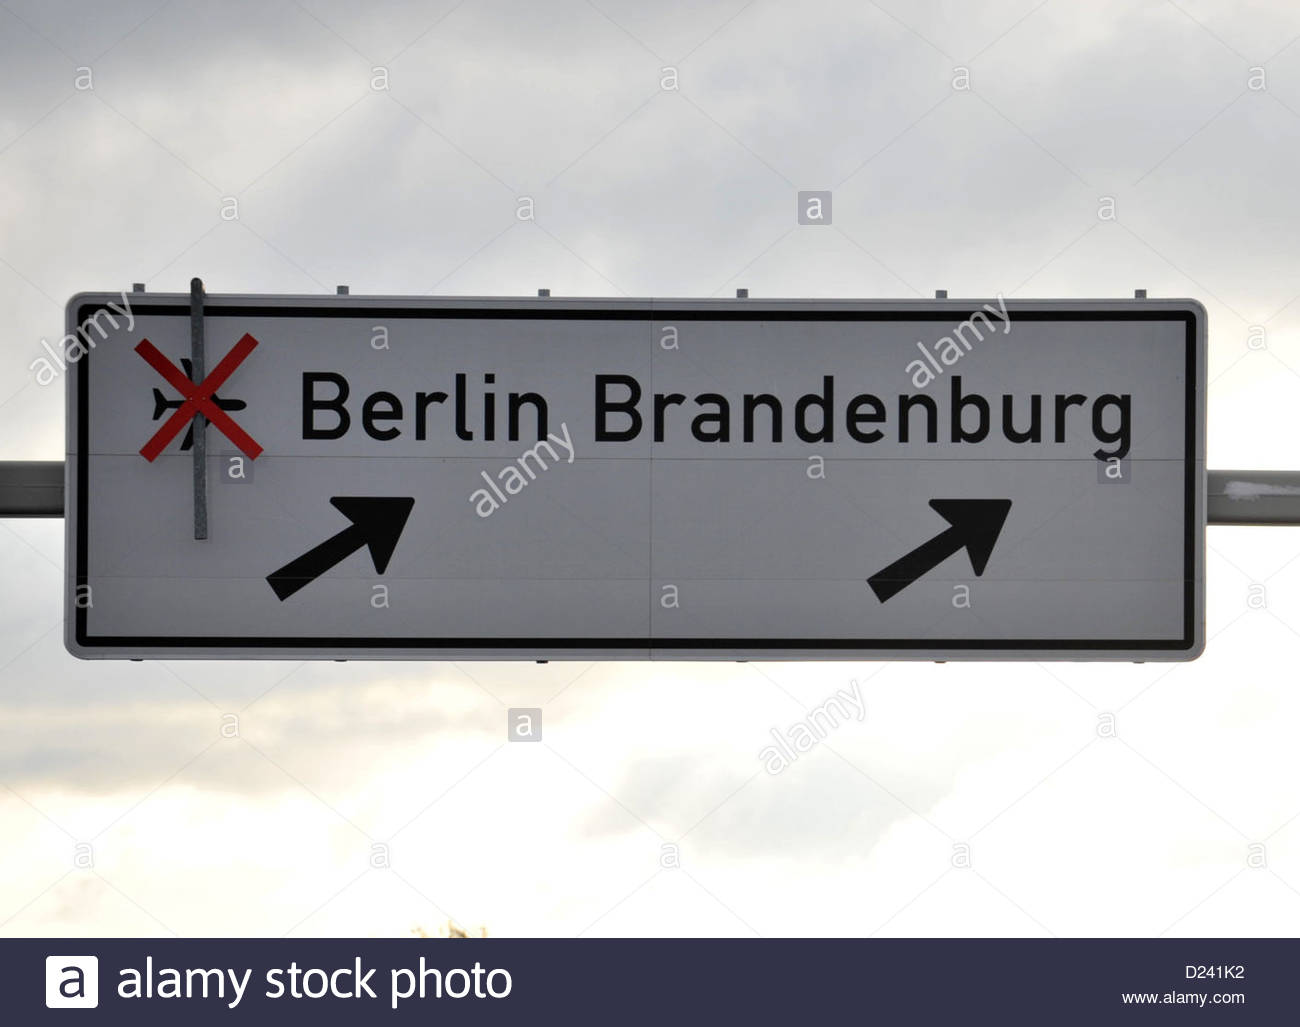 view od a sign board at an access road of berlin brandenburg airport D241K2